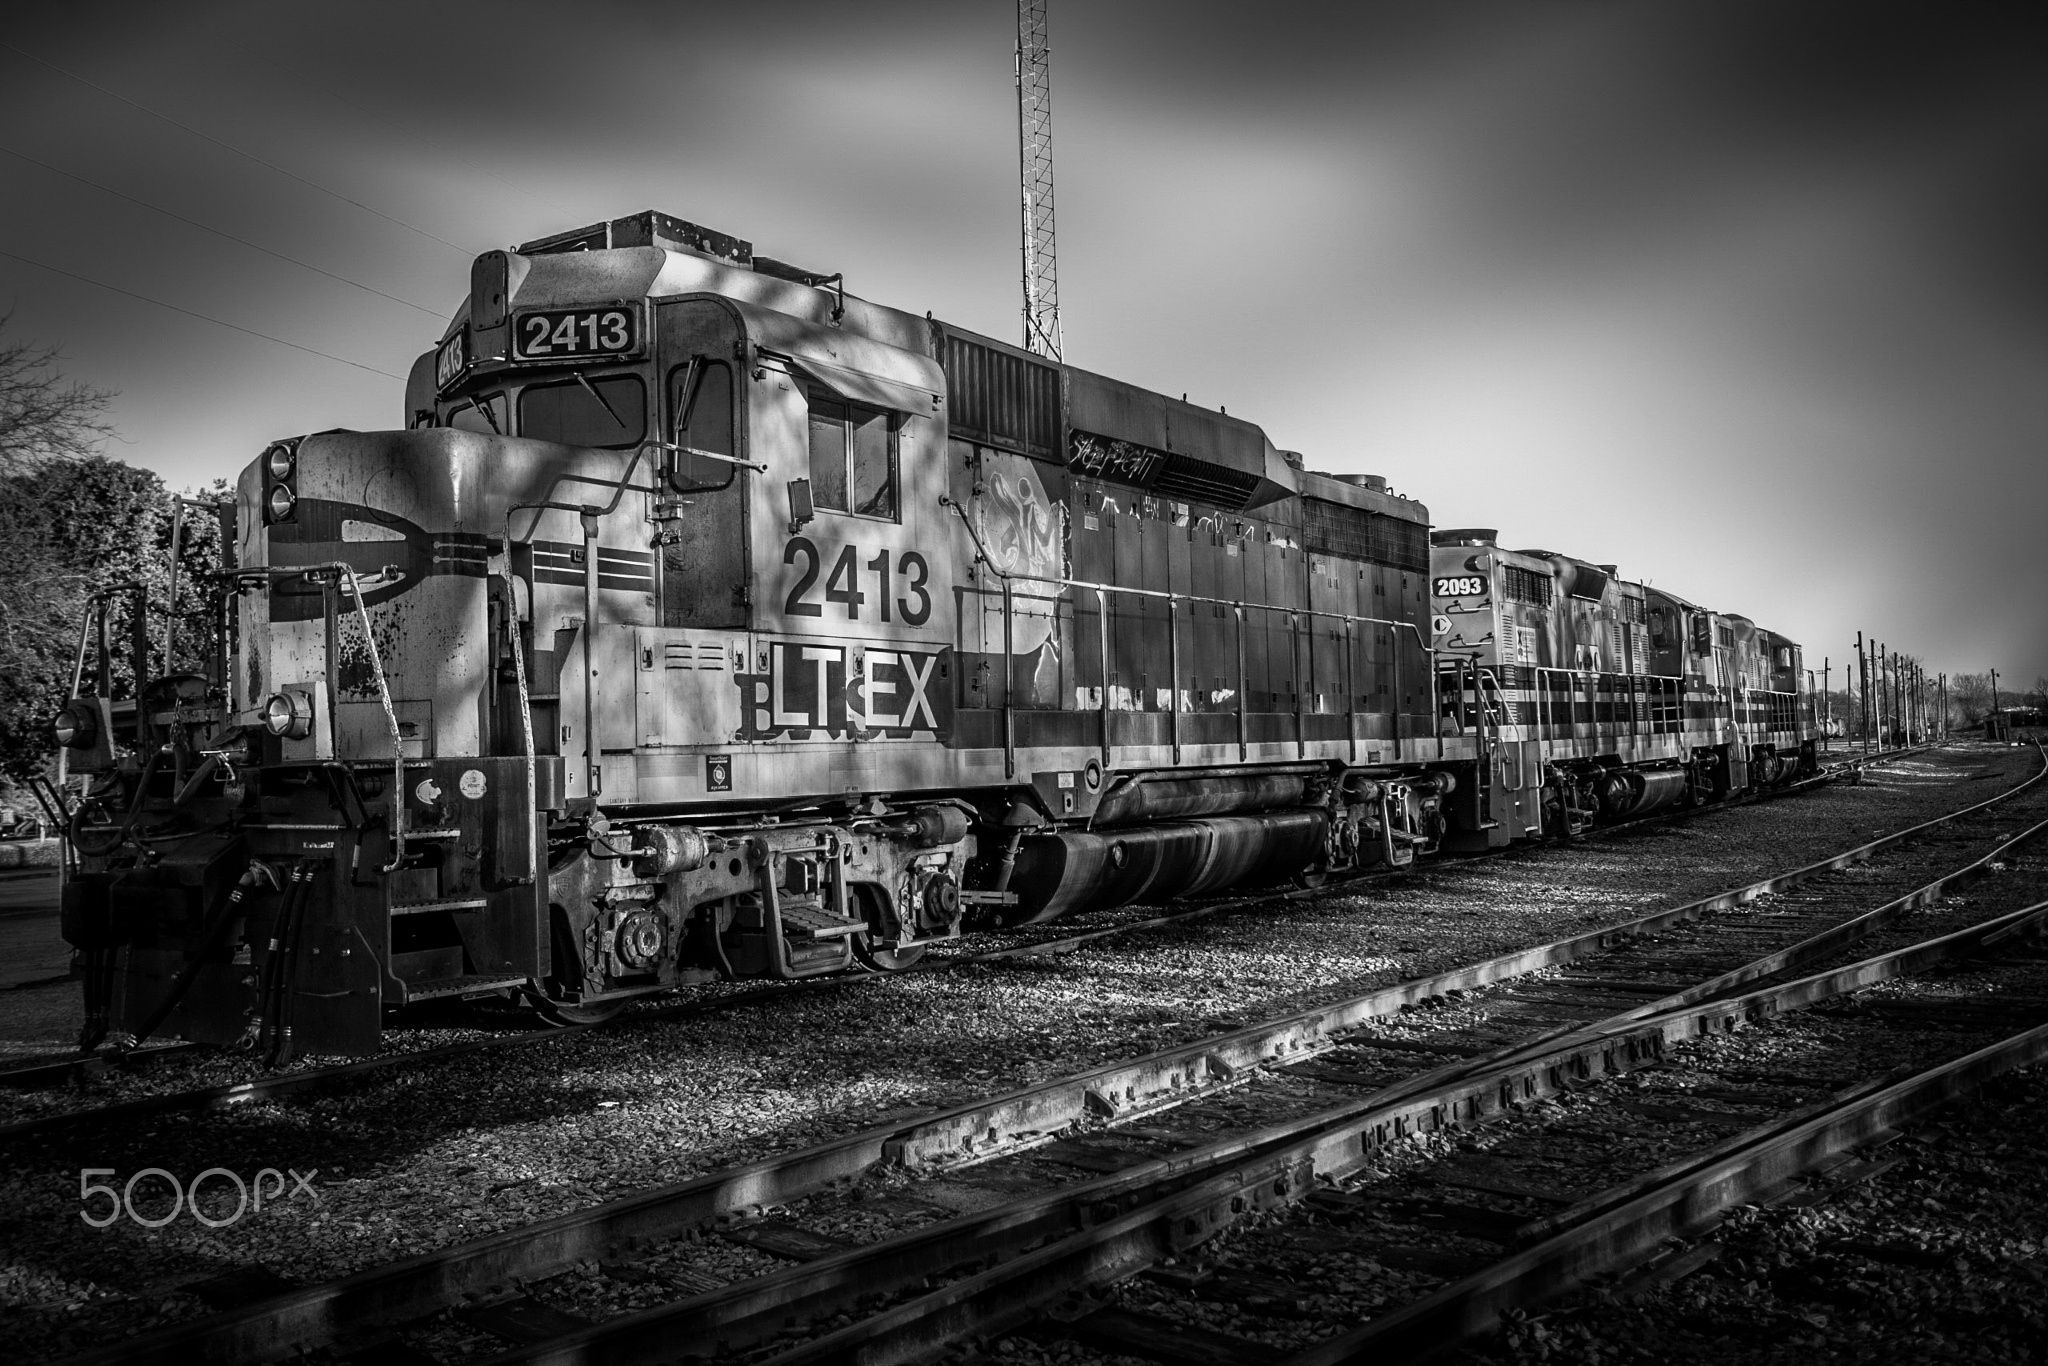 """CSX Engine - I shot this train in Macon, Ga and decided to post process in B&W w Complex Lighting.  Follow me to see more of my work and to buy high quality, professional prints.  <a href=""""http://www.liamphotography.net""""></a>Website 